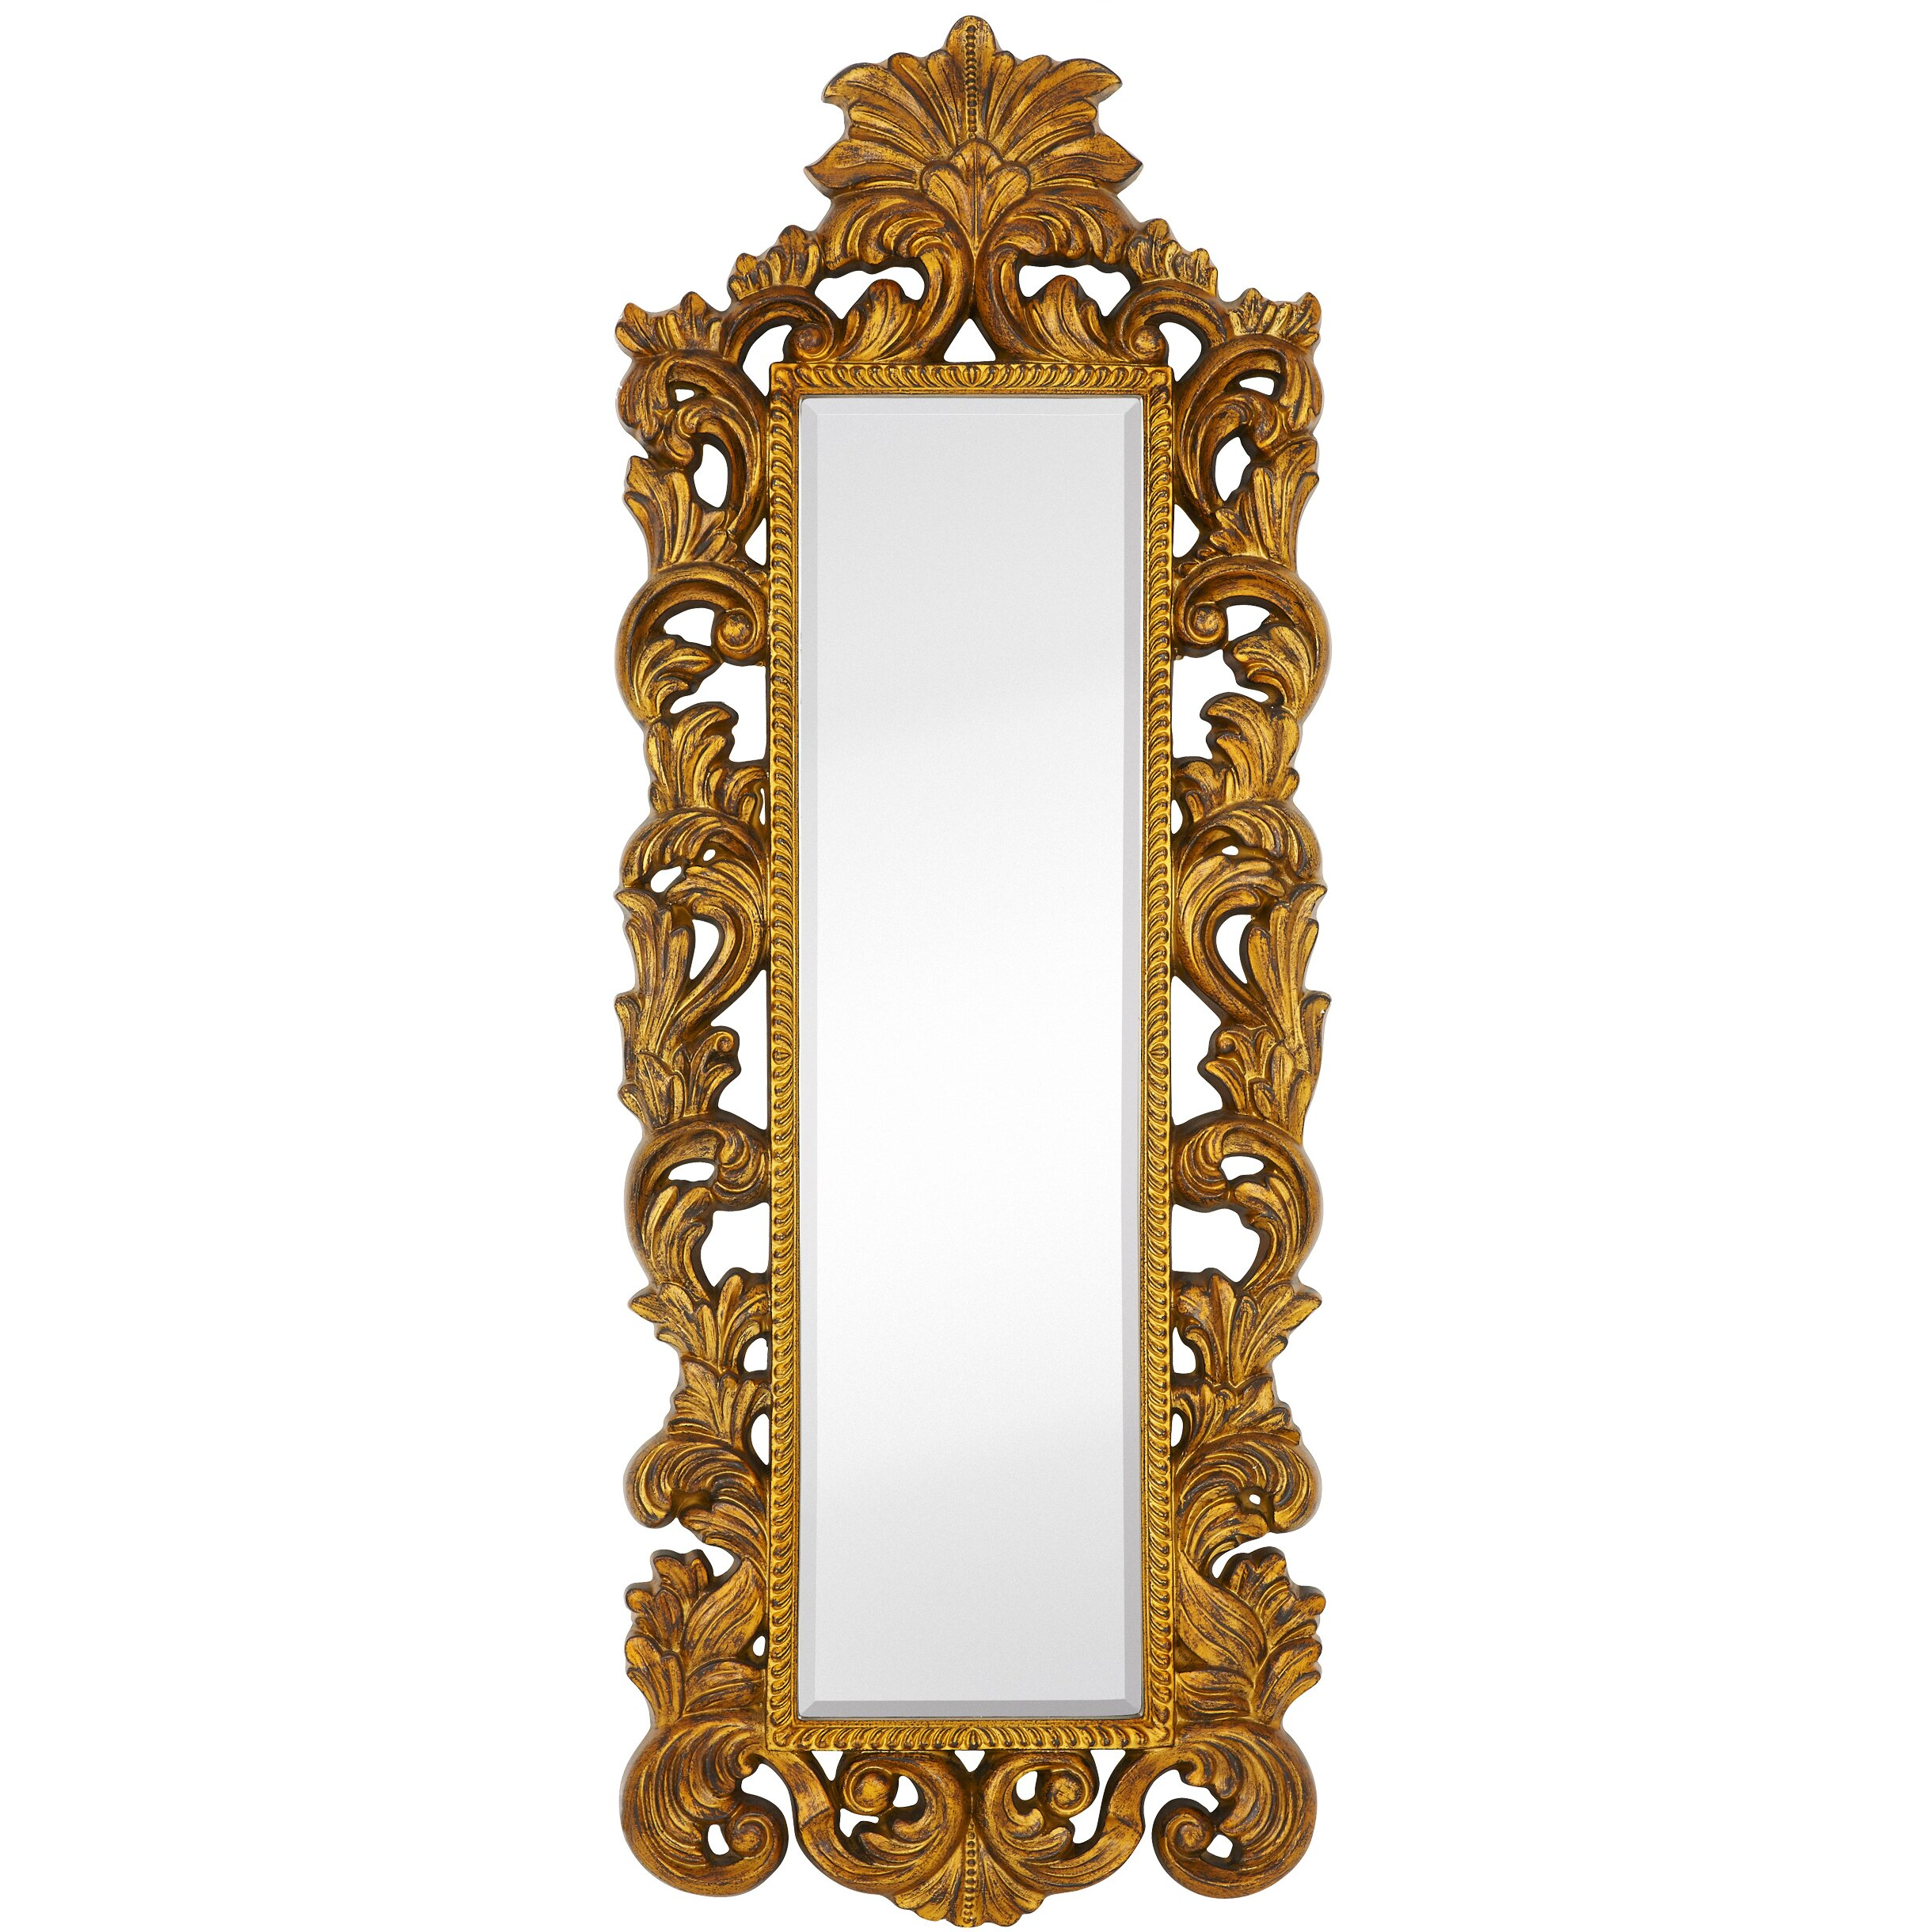 Majestic mirror tall narrow mirror leaf with black rub for Narrow mirror